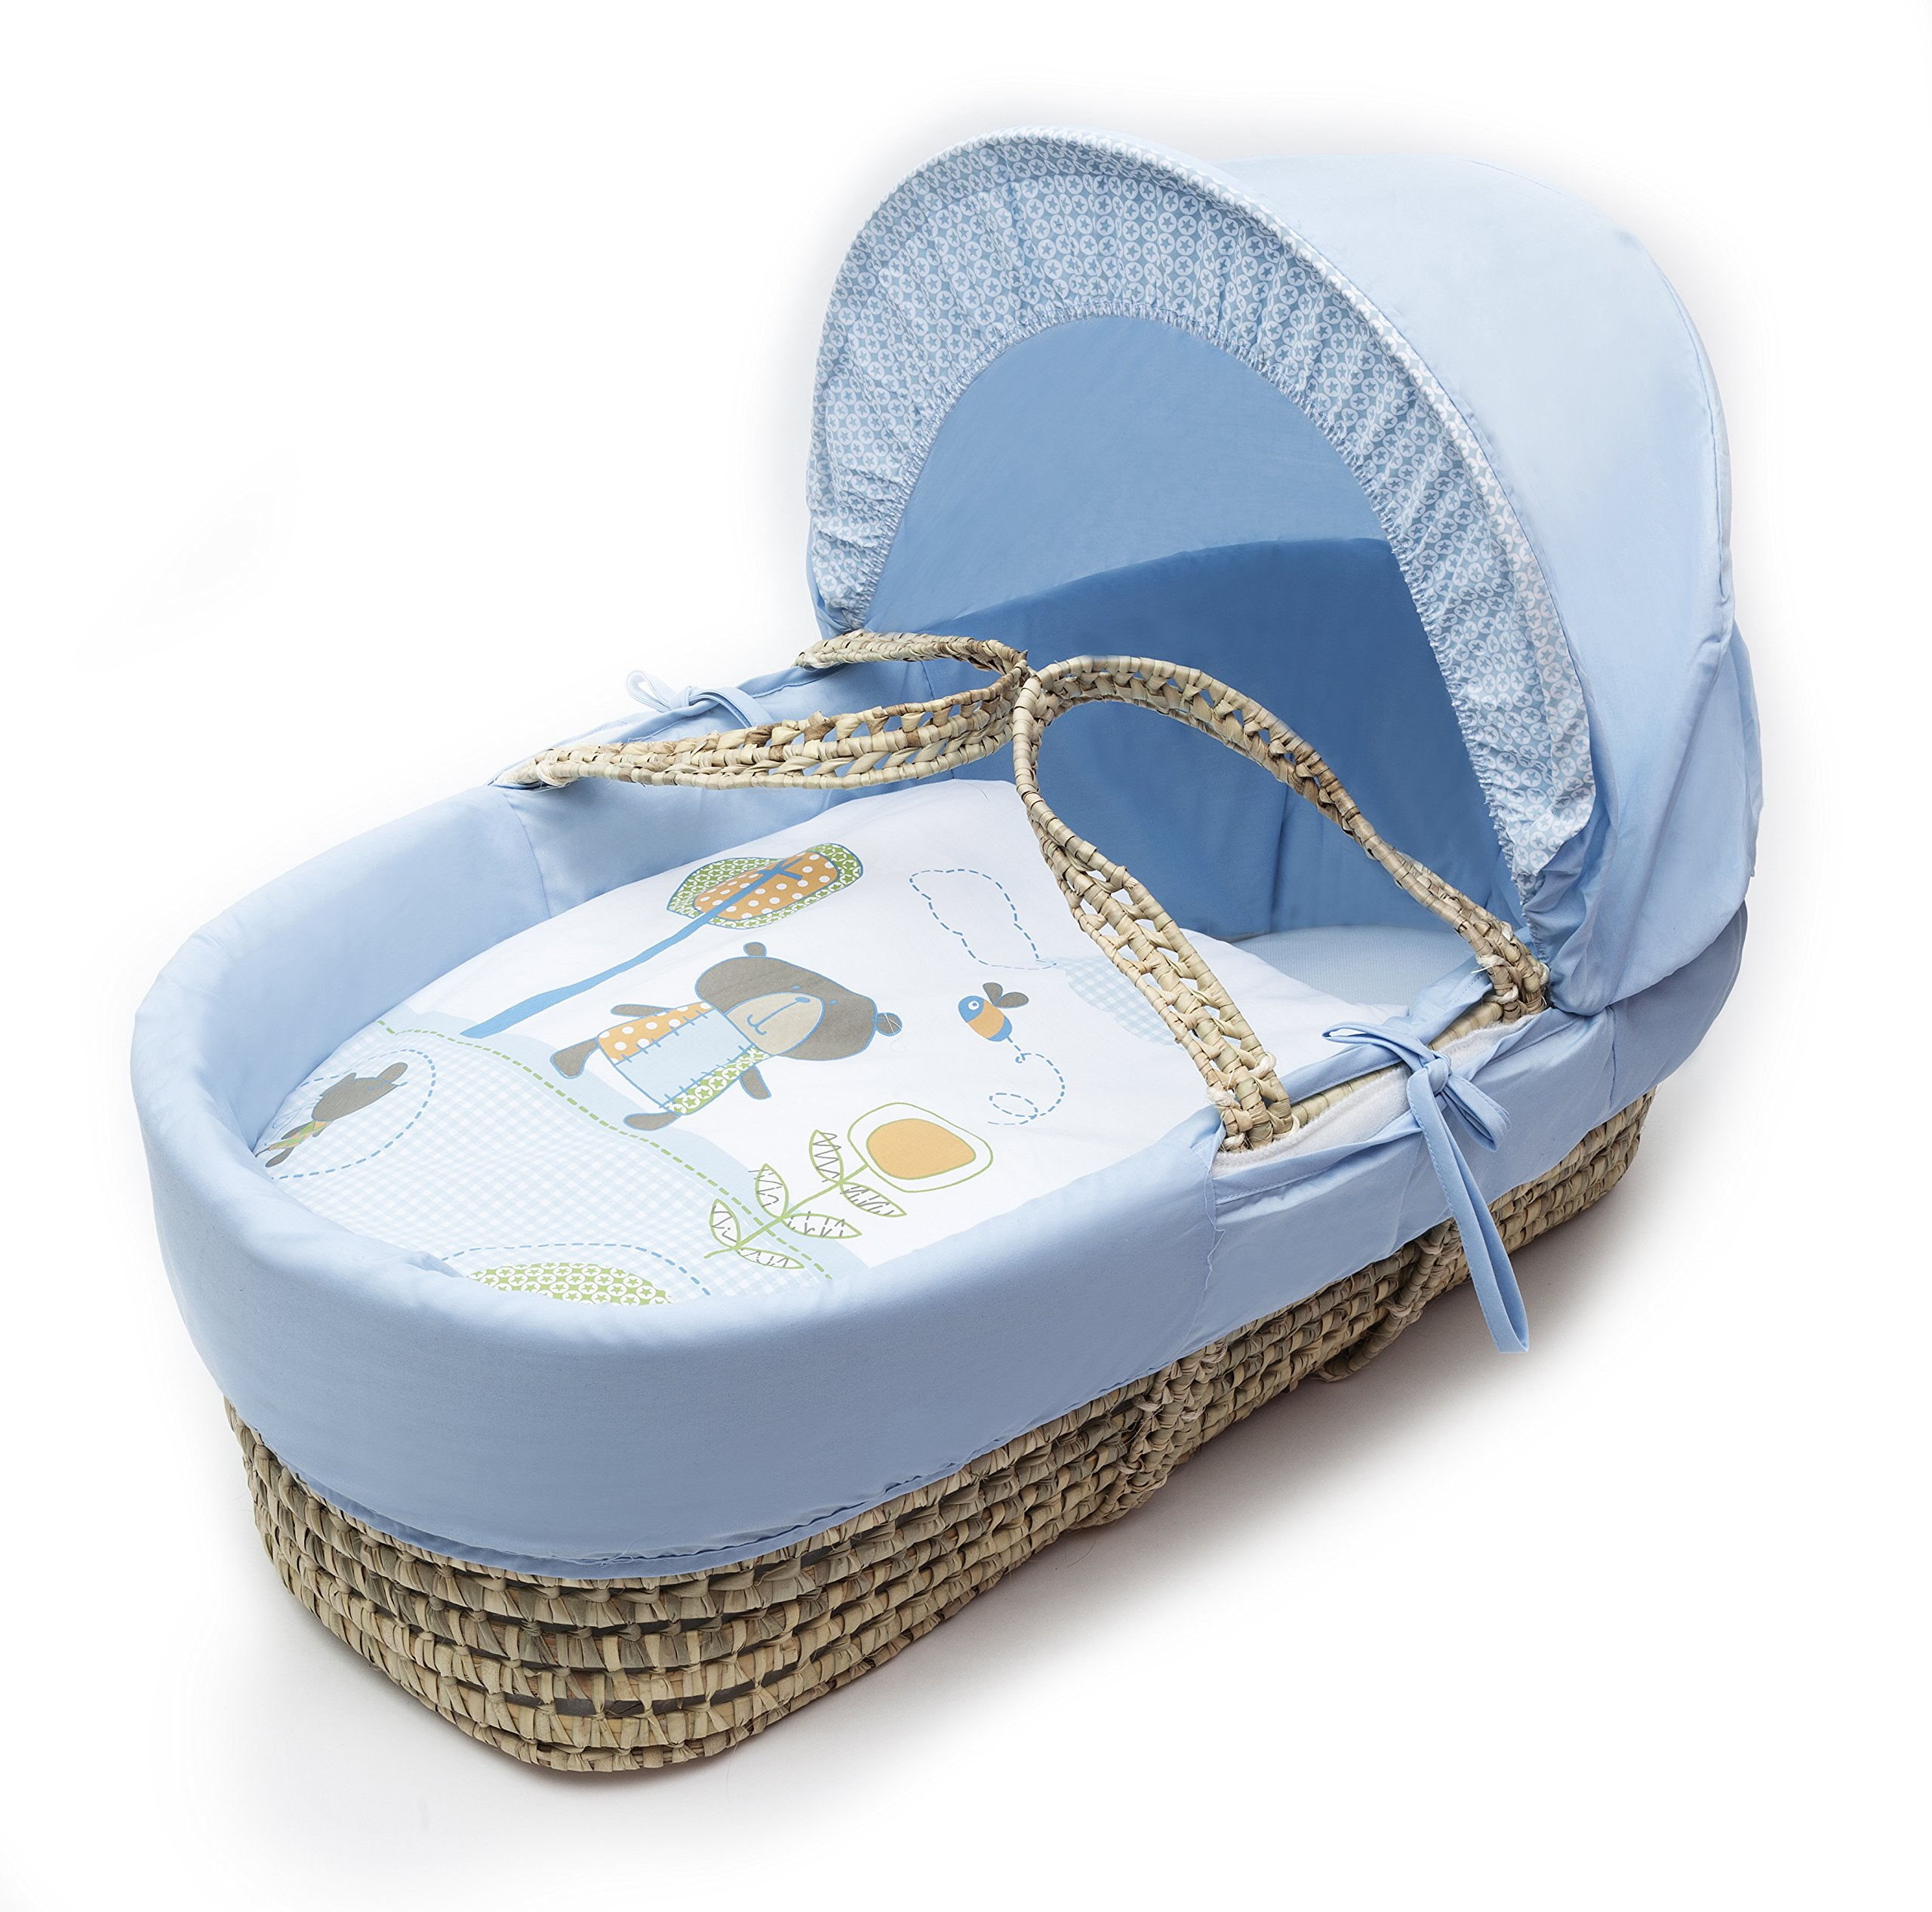 Beary Nice Blue Palm Moses Basket Padded Elegant Baby Suitable from newborn for up to 9kg, this Moses Basket uses Easy-care Poly Cotton with a soft padding surround Suitable from newborn to 9 months It also includes a comfortable mattress and an adjustable hood perfect to create a cosy sleeping space for your precious little one 1